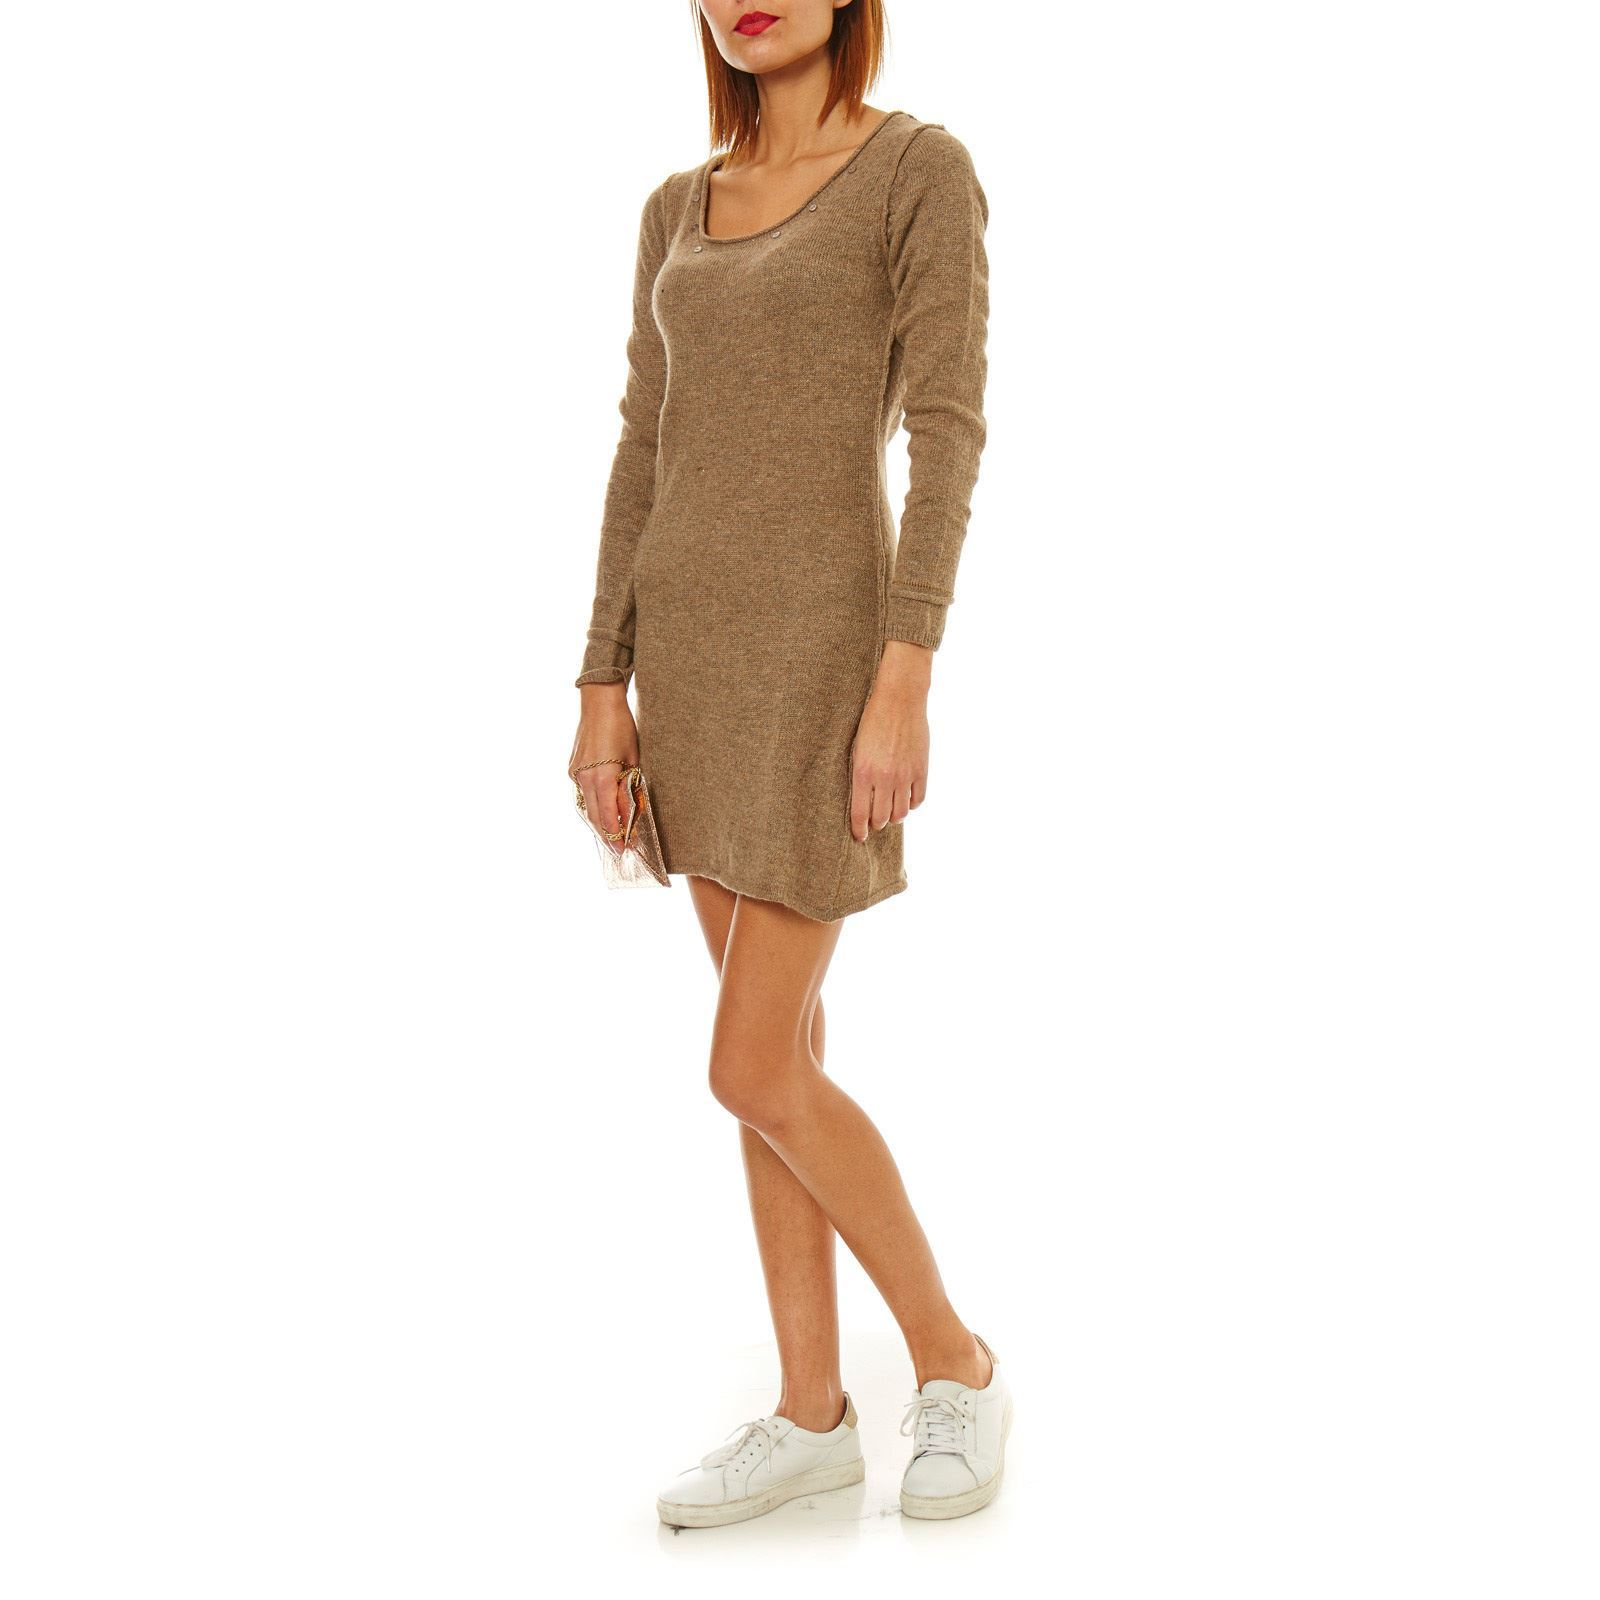 5696a5e856d85 Maille Love Robe pull 15% laine